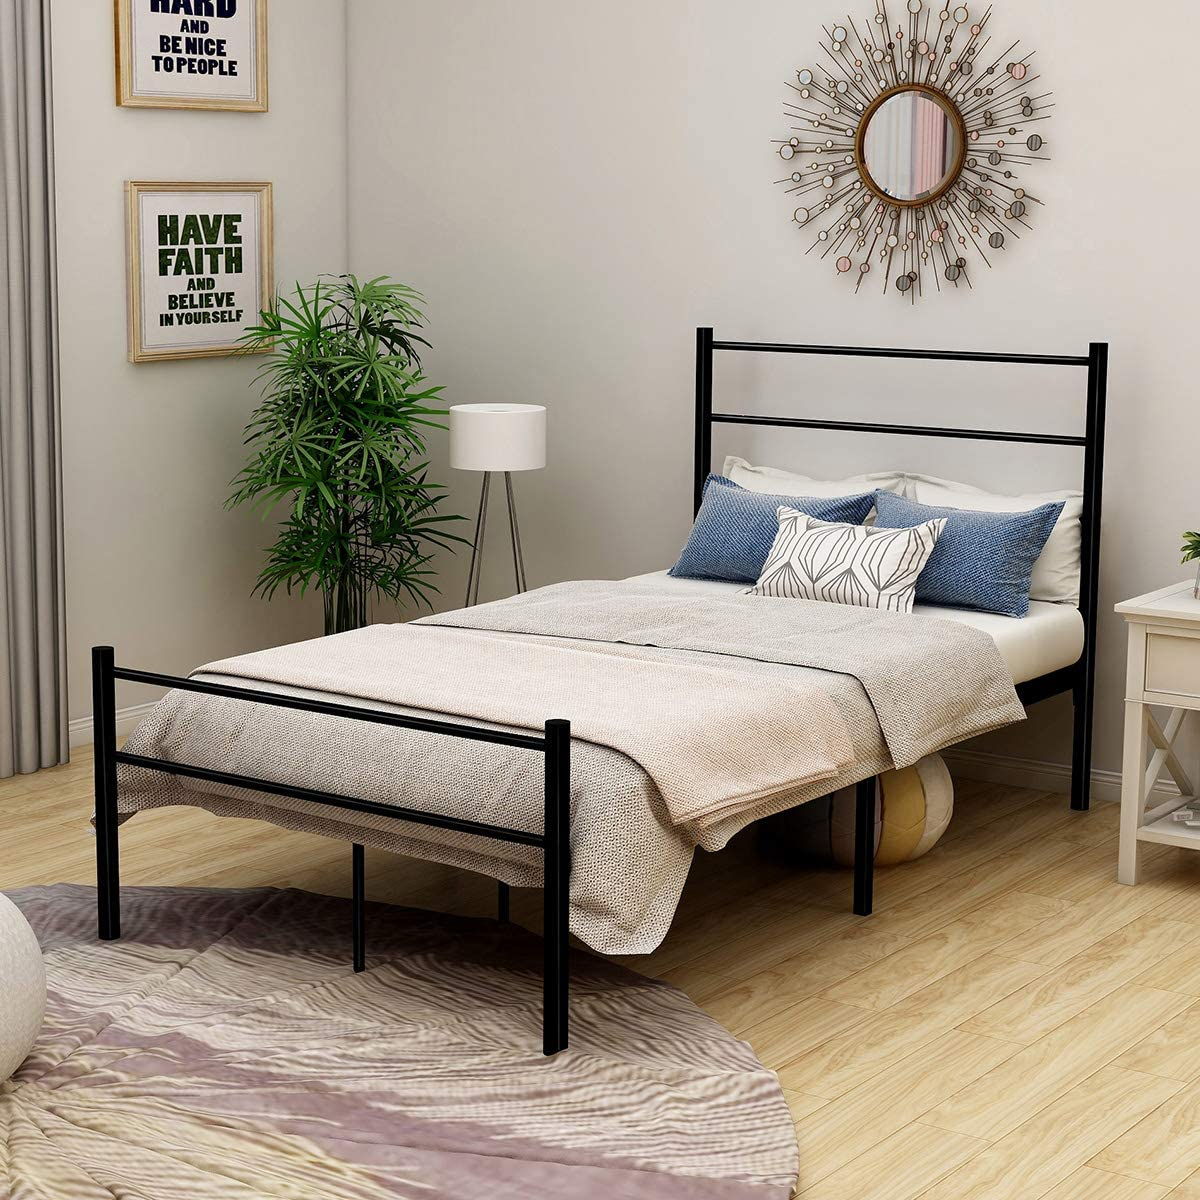 JURMERRY Single Metal Bed Frame with Headboard and Footboard Heavy Duty Mattress Foundation,Black